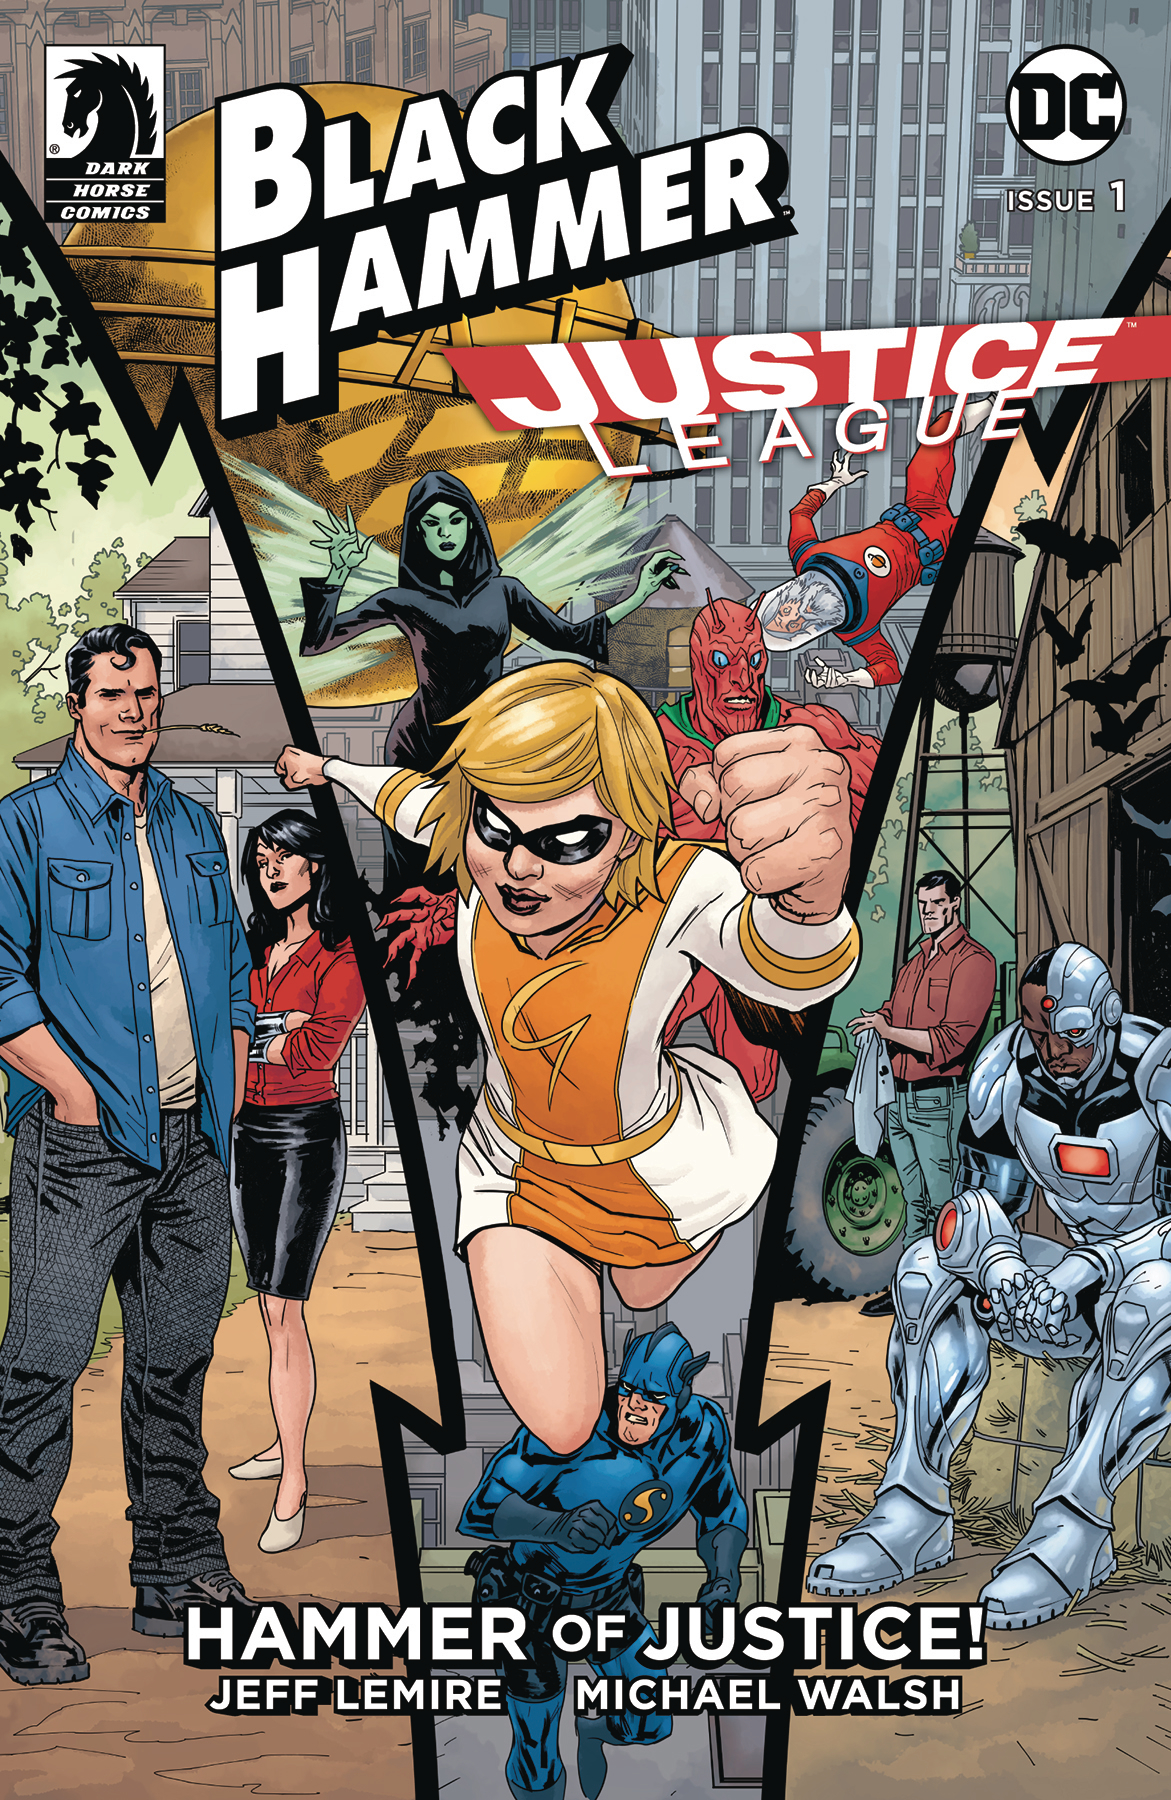 BLACK HAMMER JUSTICE LEAGUE #1 (OF 5) CVR C PAQUETTE